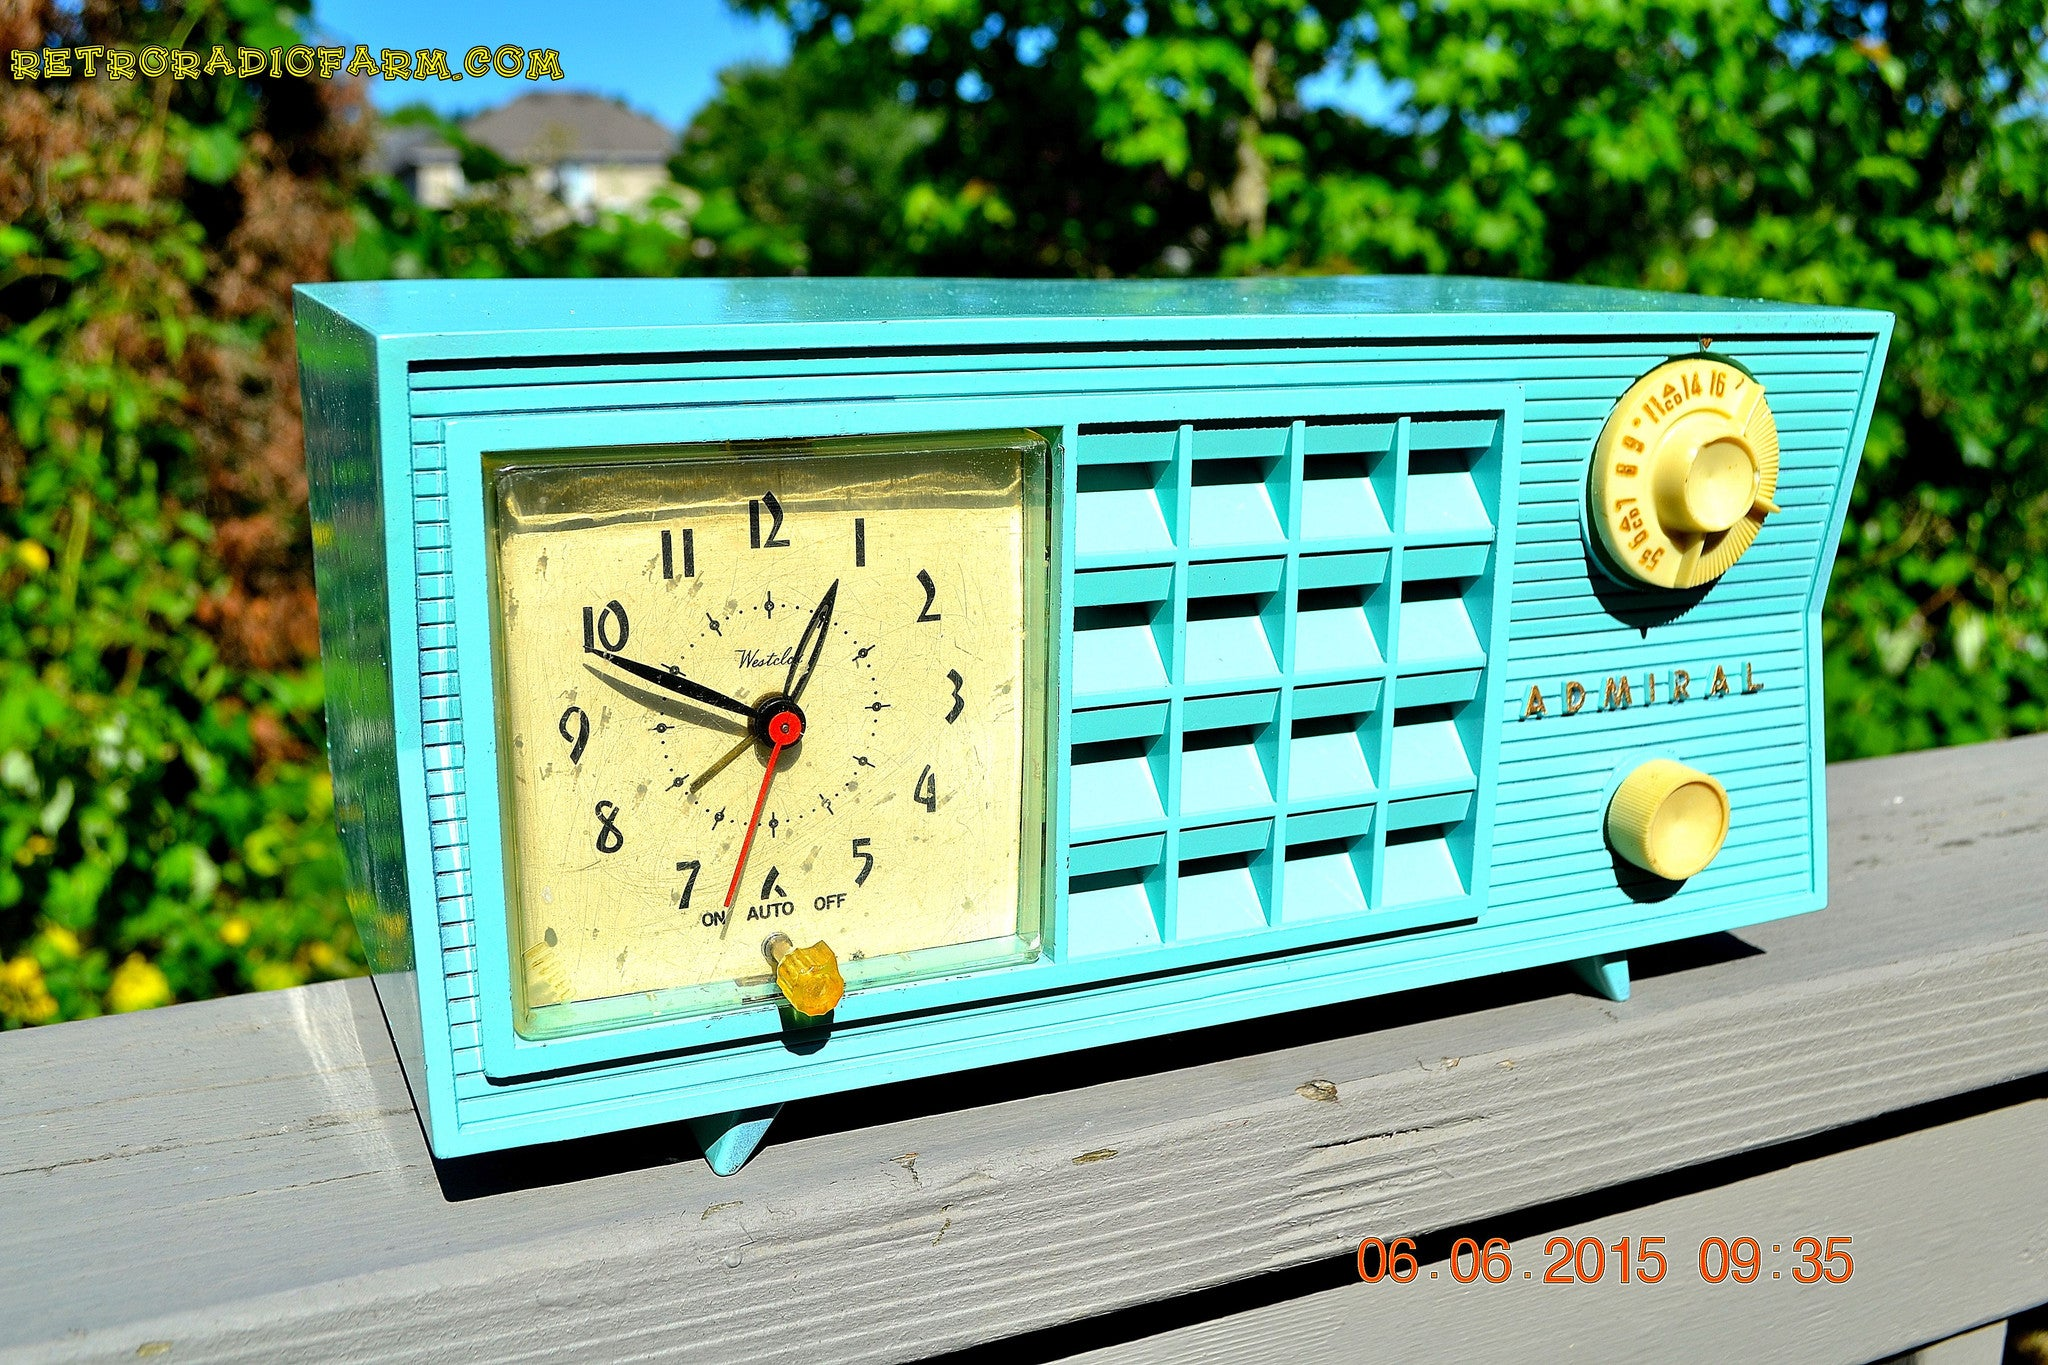 SOLD! - Nov 24, 2015 - PISTACHIO GREEN Retro Jetsons Mid Century Vintage 1955 Admiral Model 251 AM Tube Radio Totally Restored! - [product_type} - Admiral - Retro Radio Farm